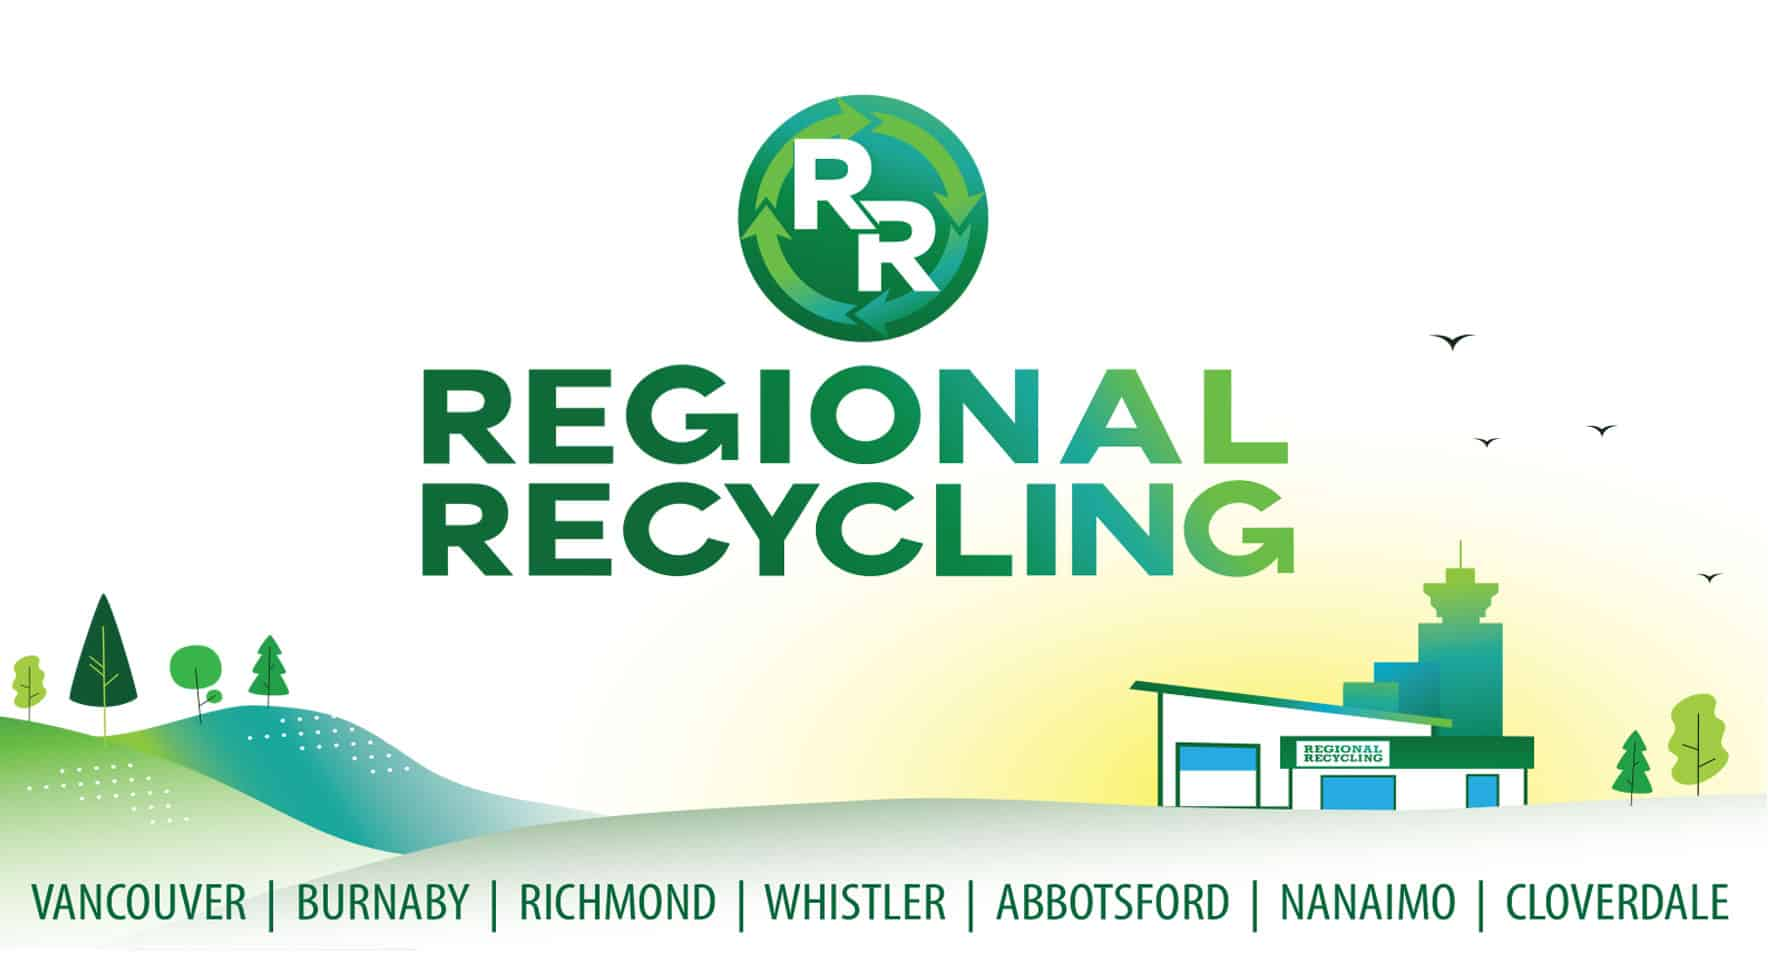 Our local recycling company has served in many locations in the Greater Vancouver area.